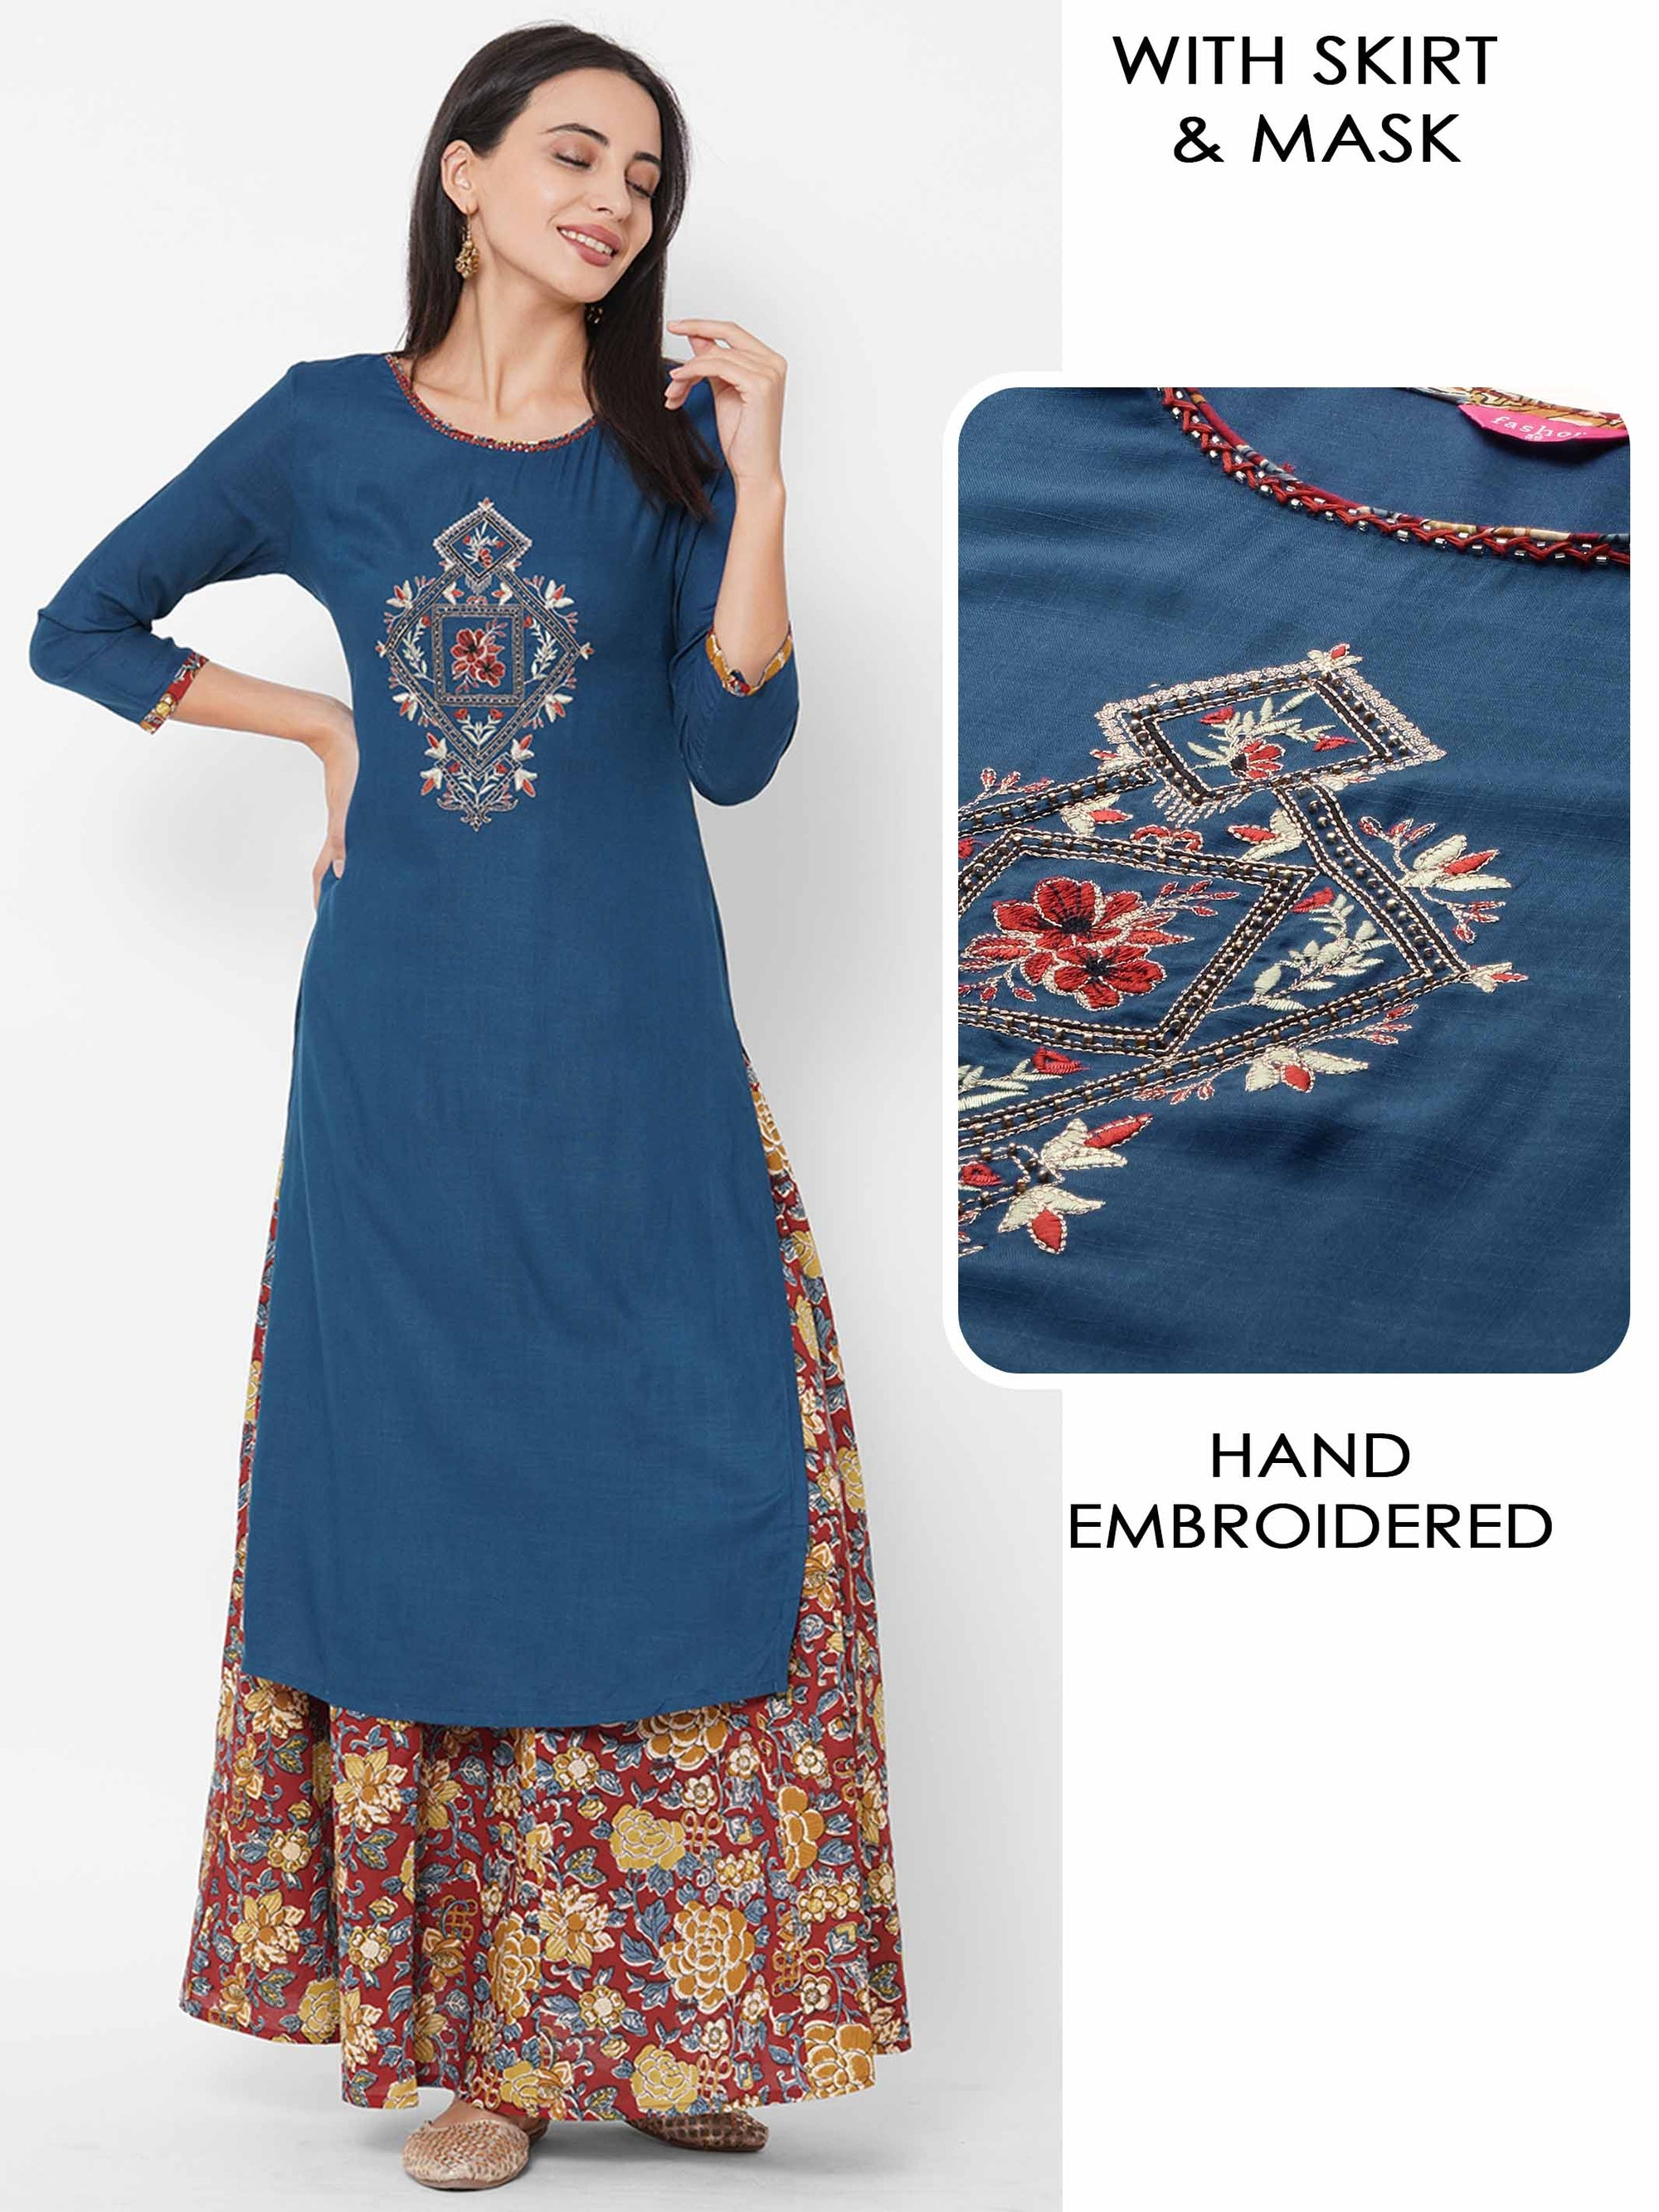 Ethnic Embroidered Kurta with Floral Jaal Printed Skirt & 2-Ply Mask – Persian Blue